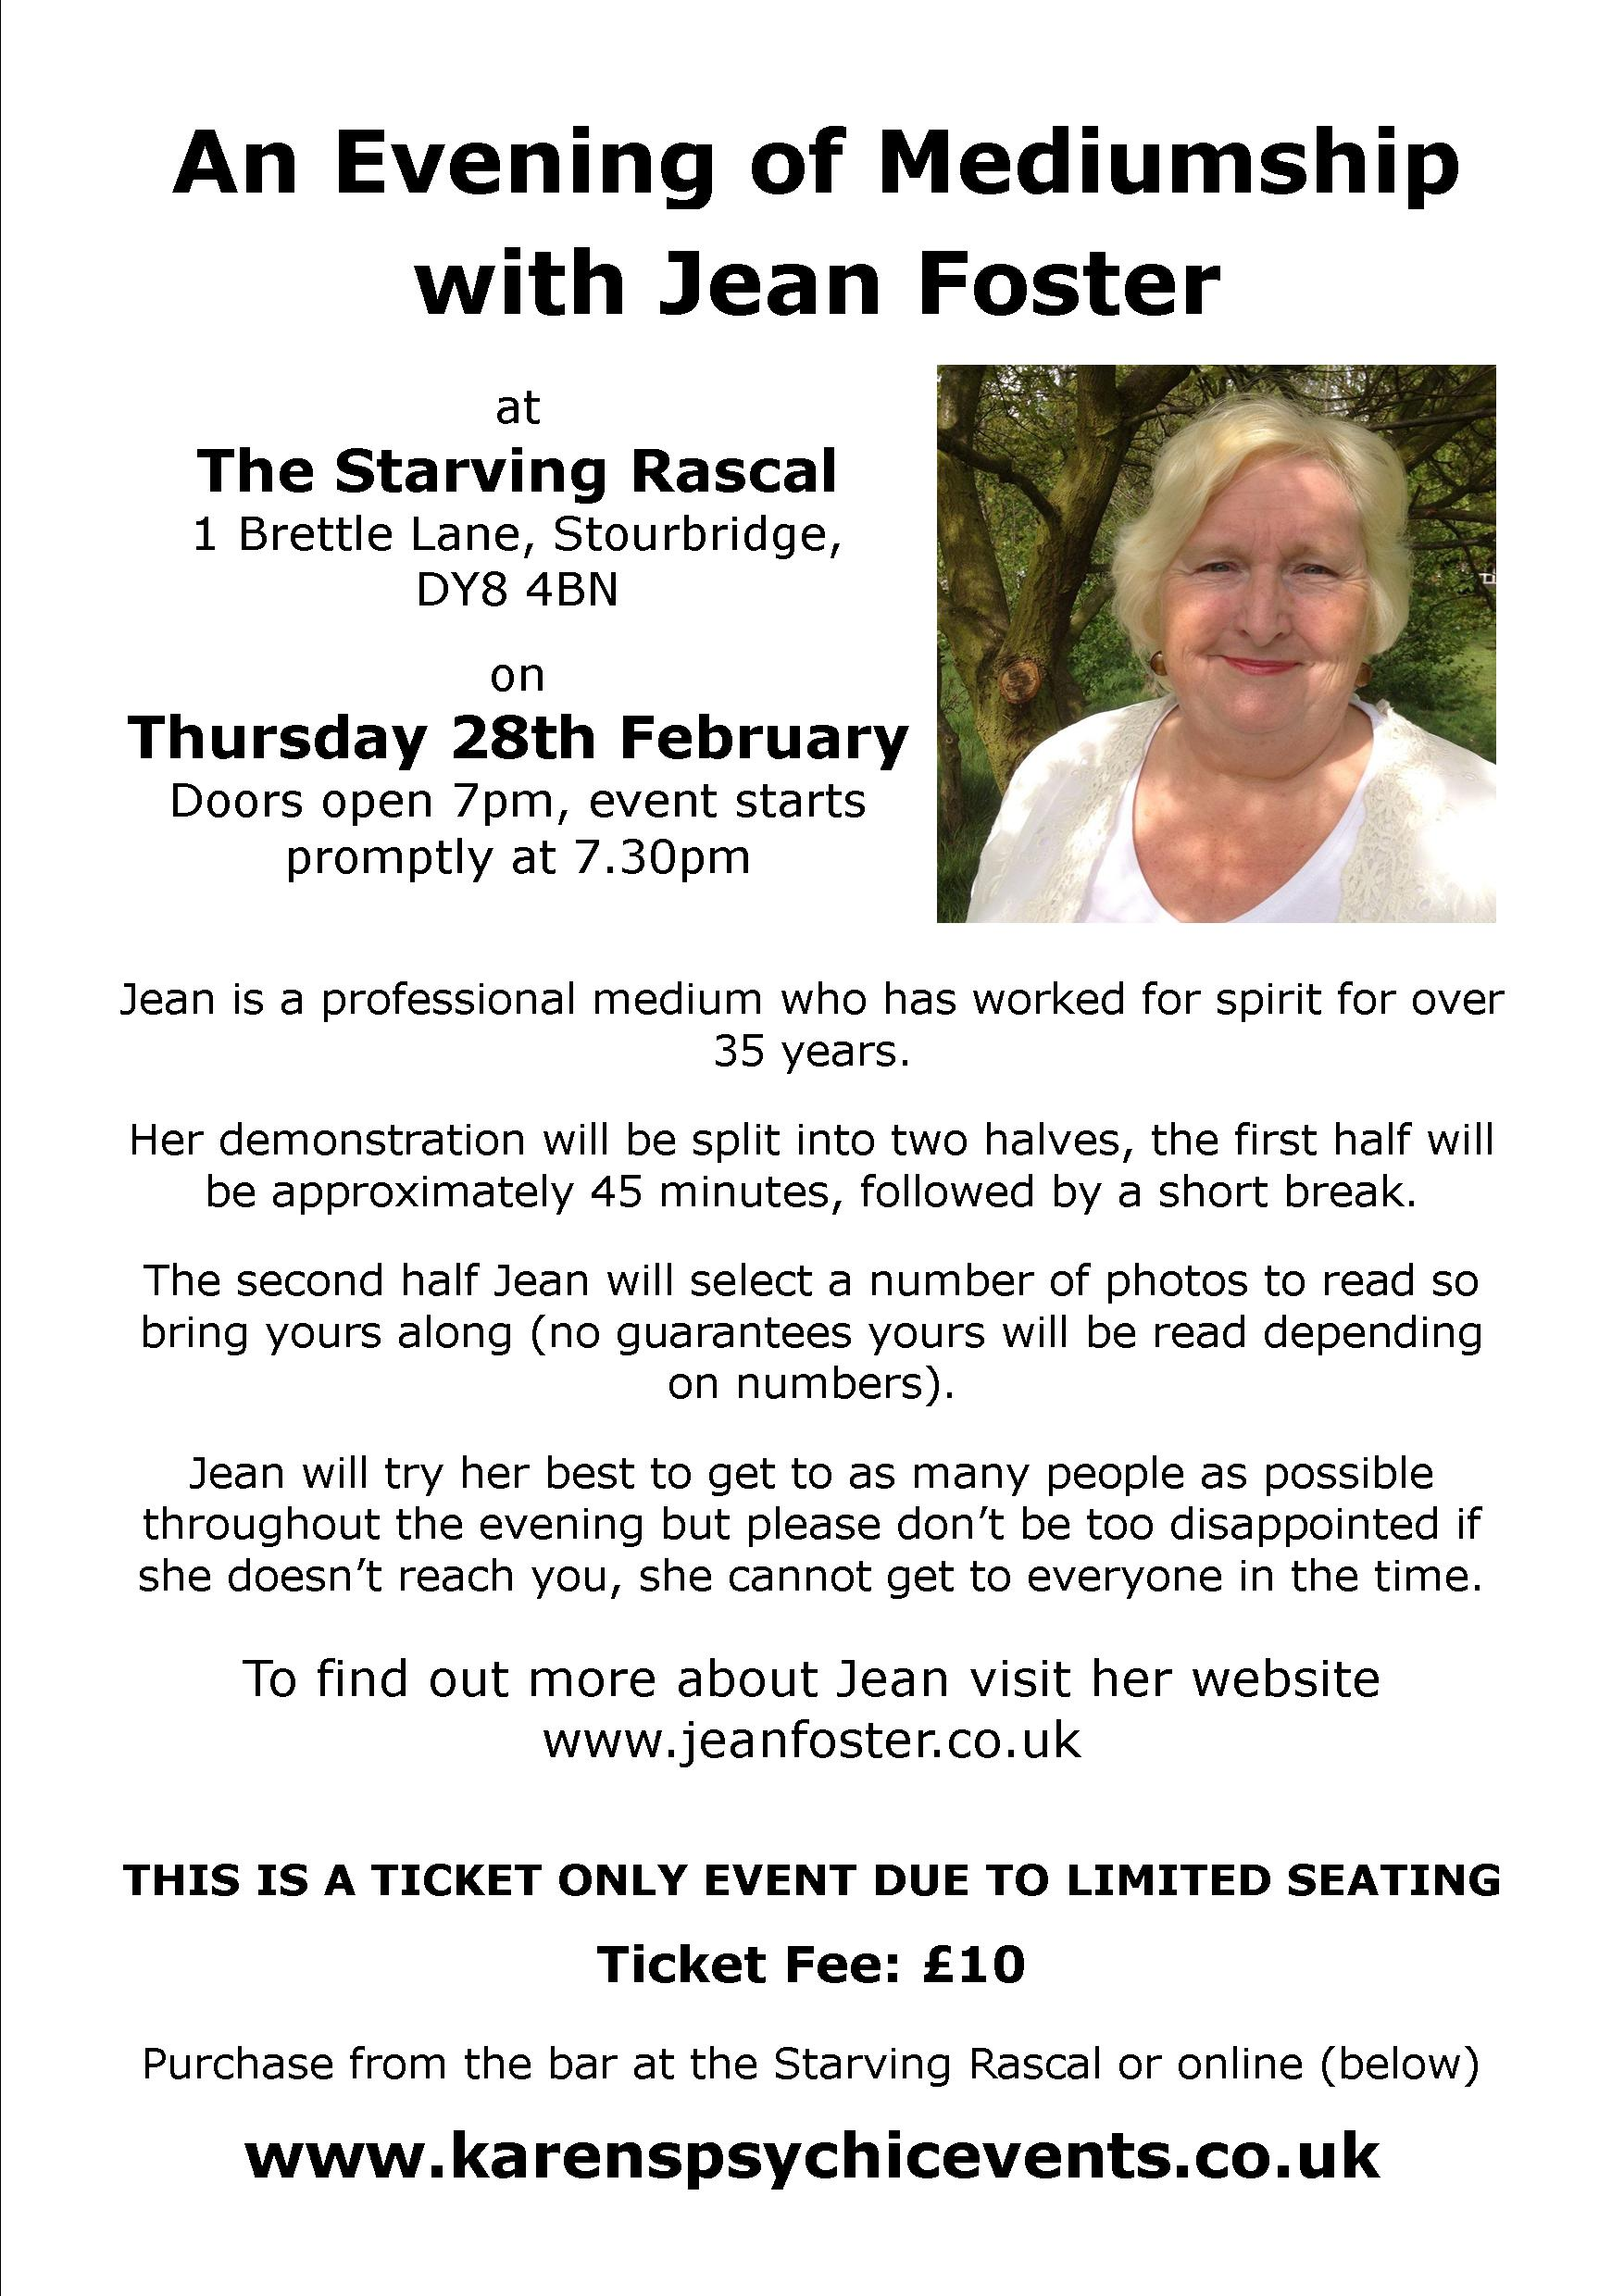 An Evening of Mediumship with Jean Foster on 28th February